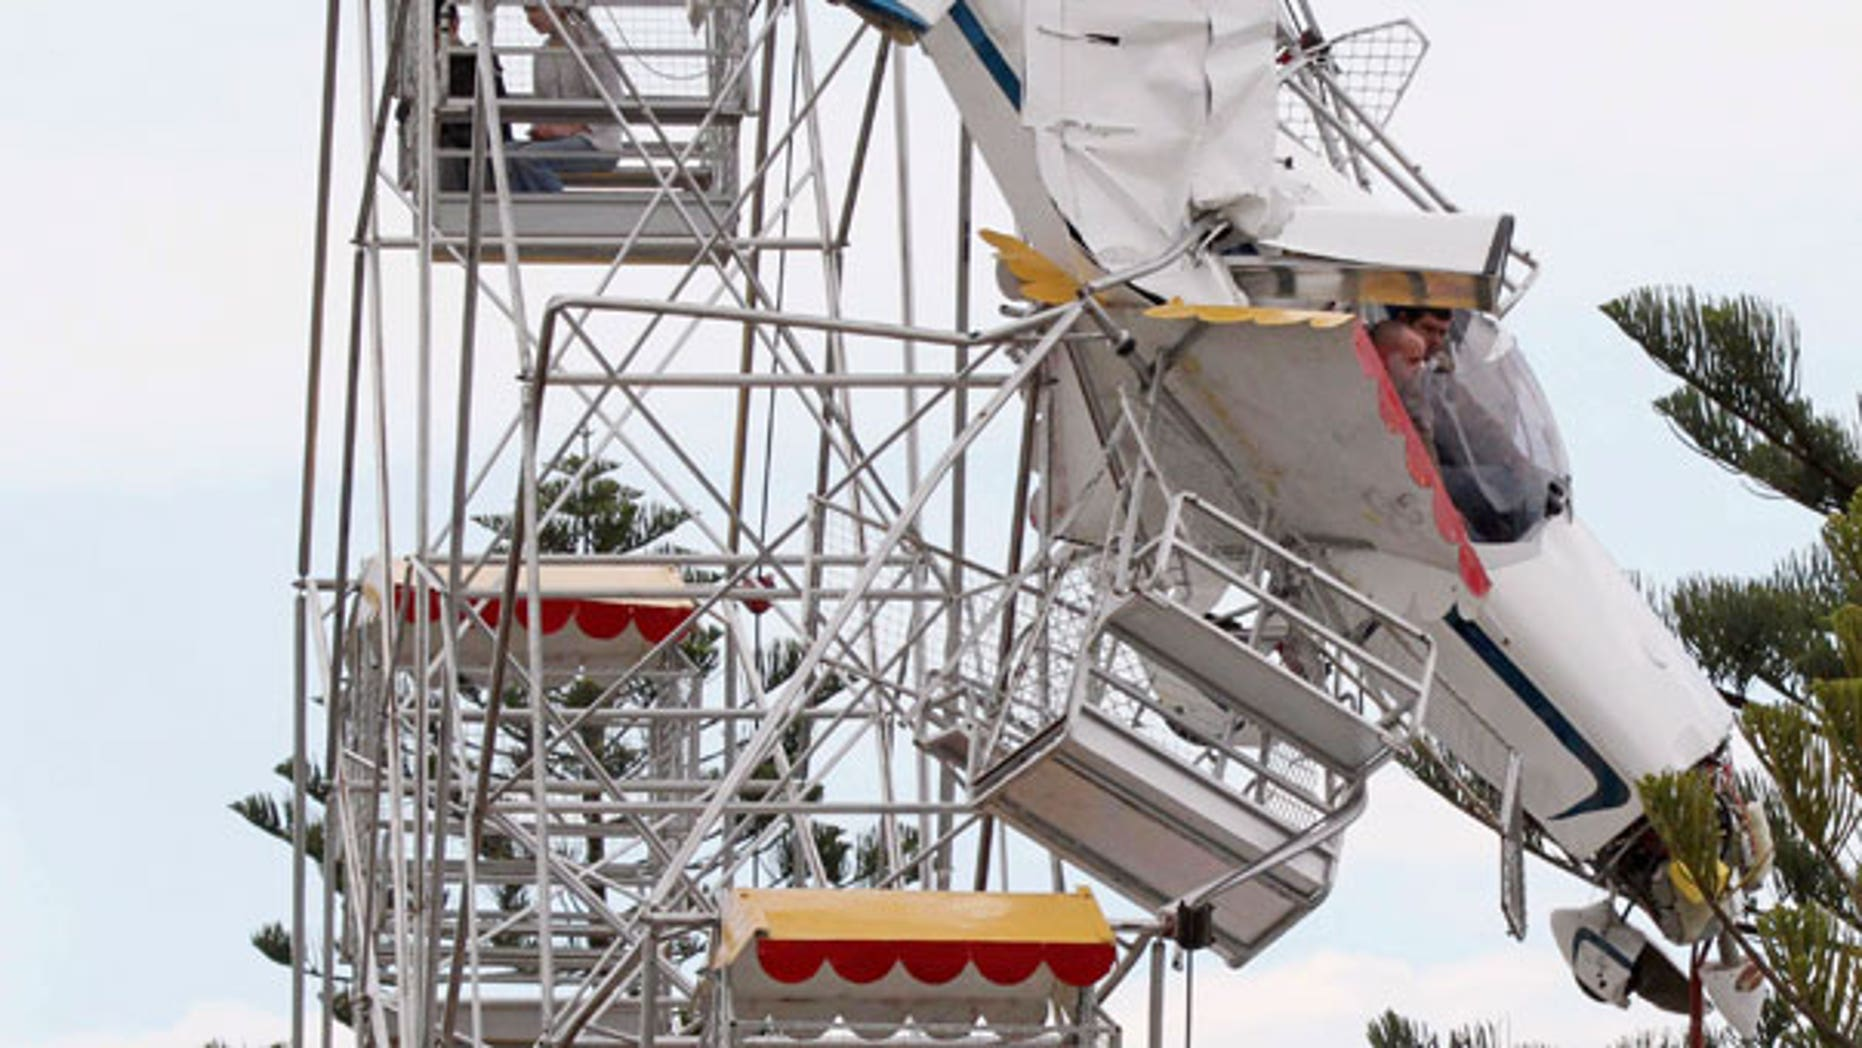 Oct. 1: Two men and their ultra-light plane hang from a Ferris wheel while two children sit in a carriage near the top of the ride at a country festival at Old Bar, Australia.